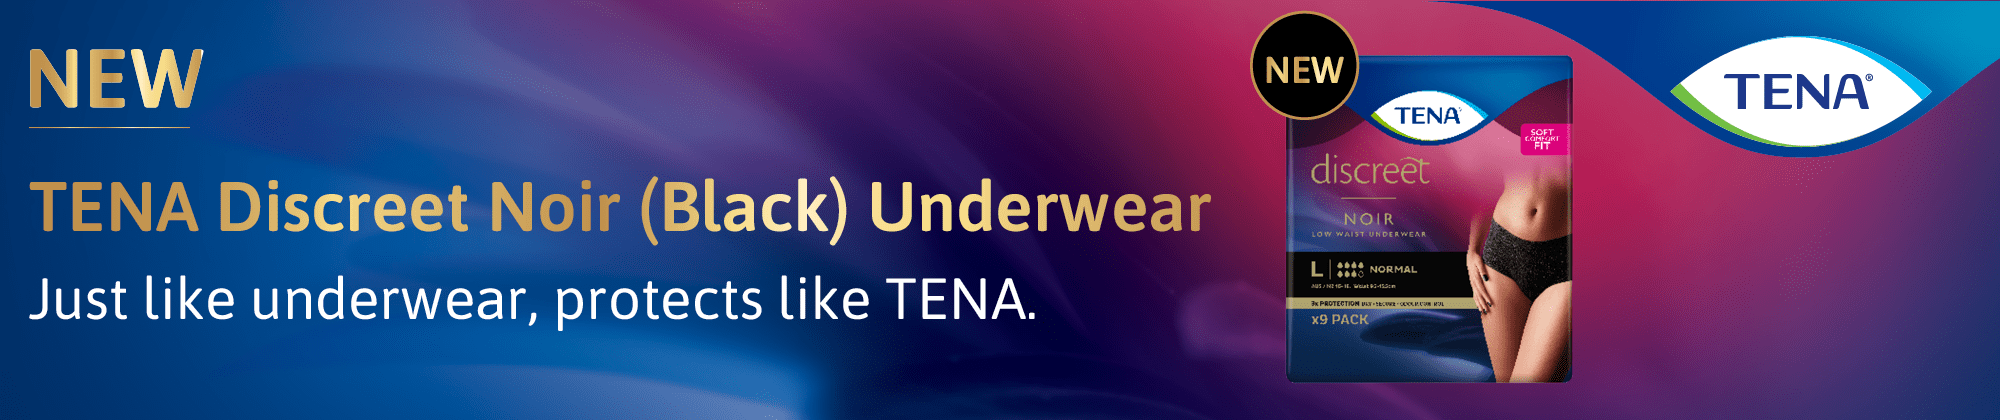 Tena promotion banner